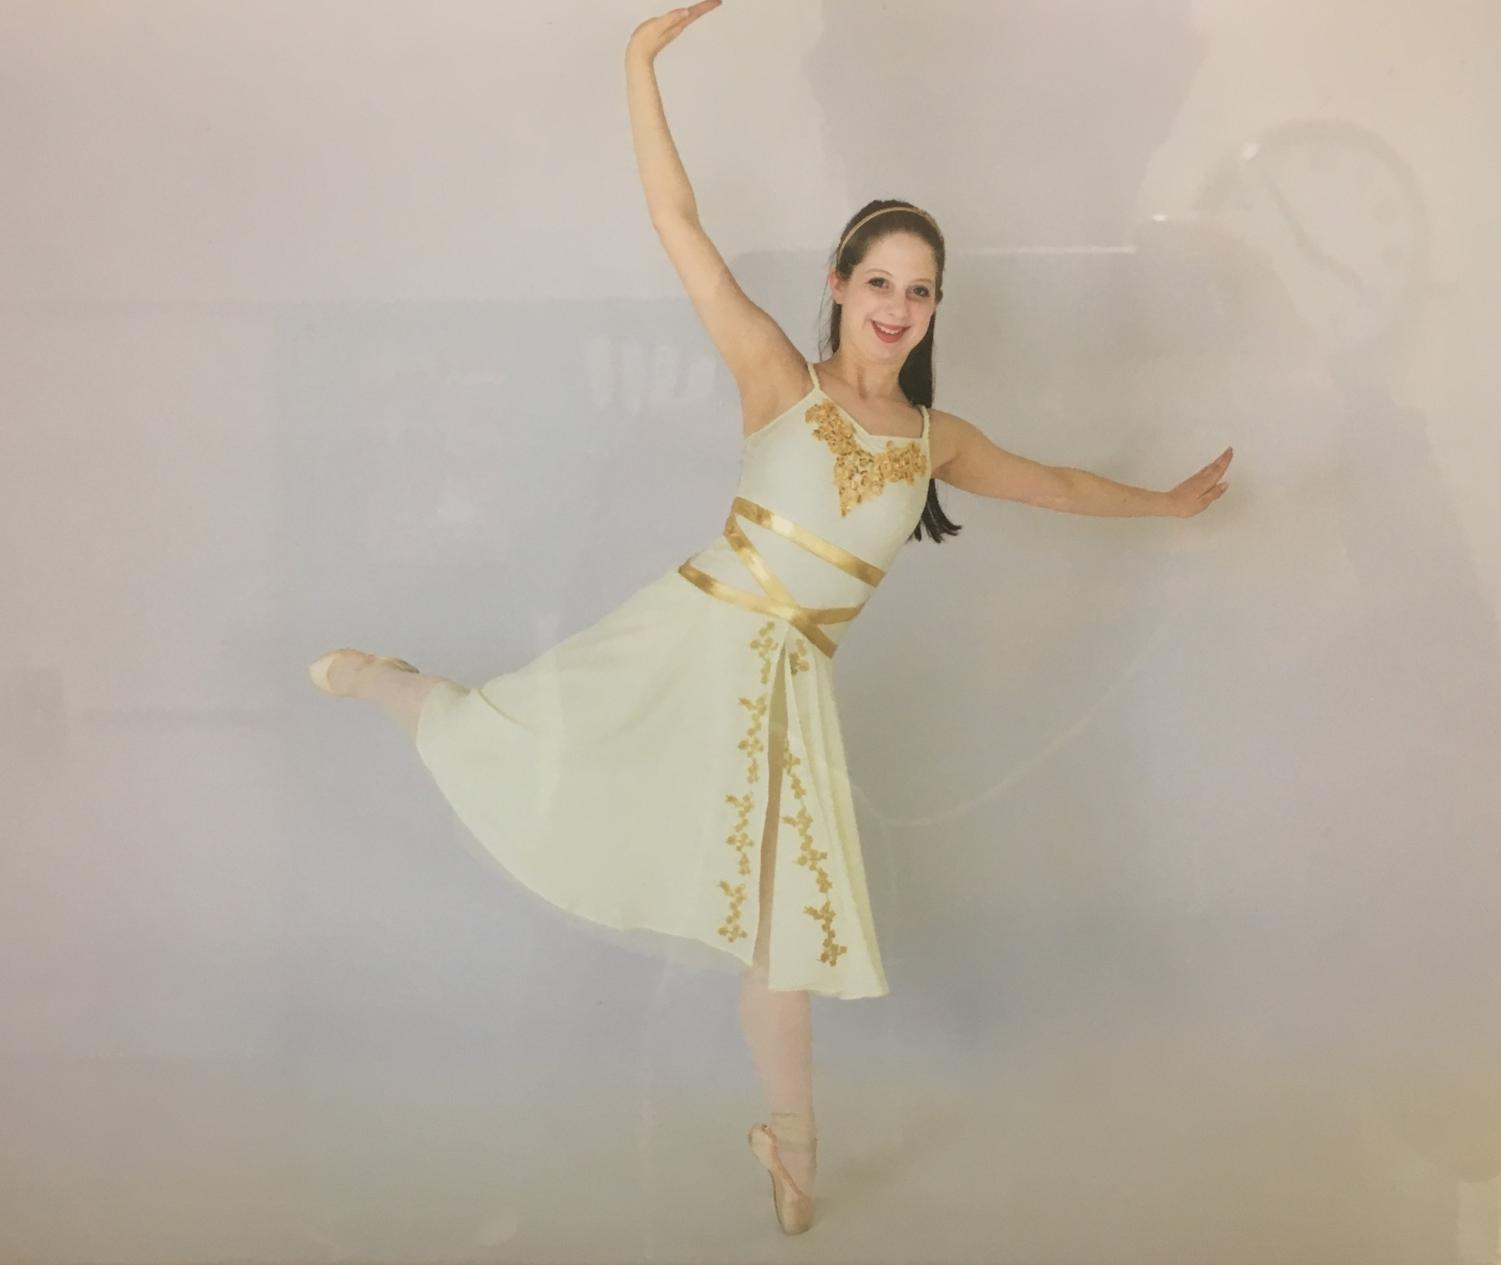 Balerina Abby Barrett poses in her performance outfit